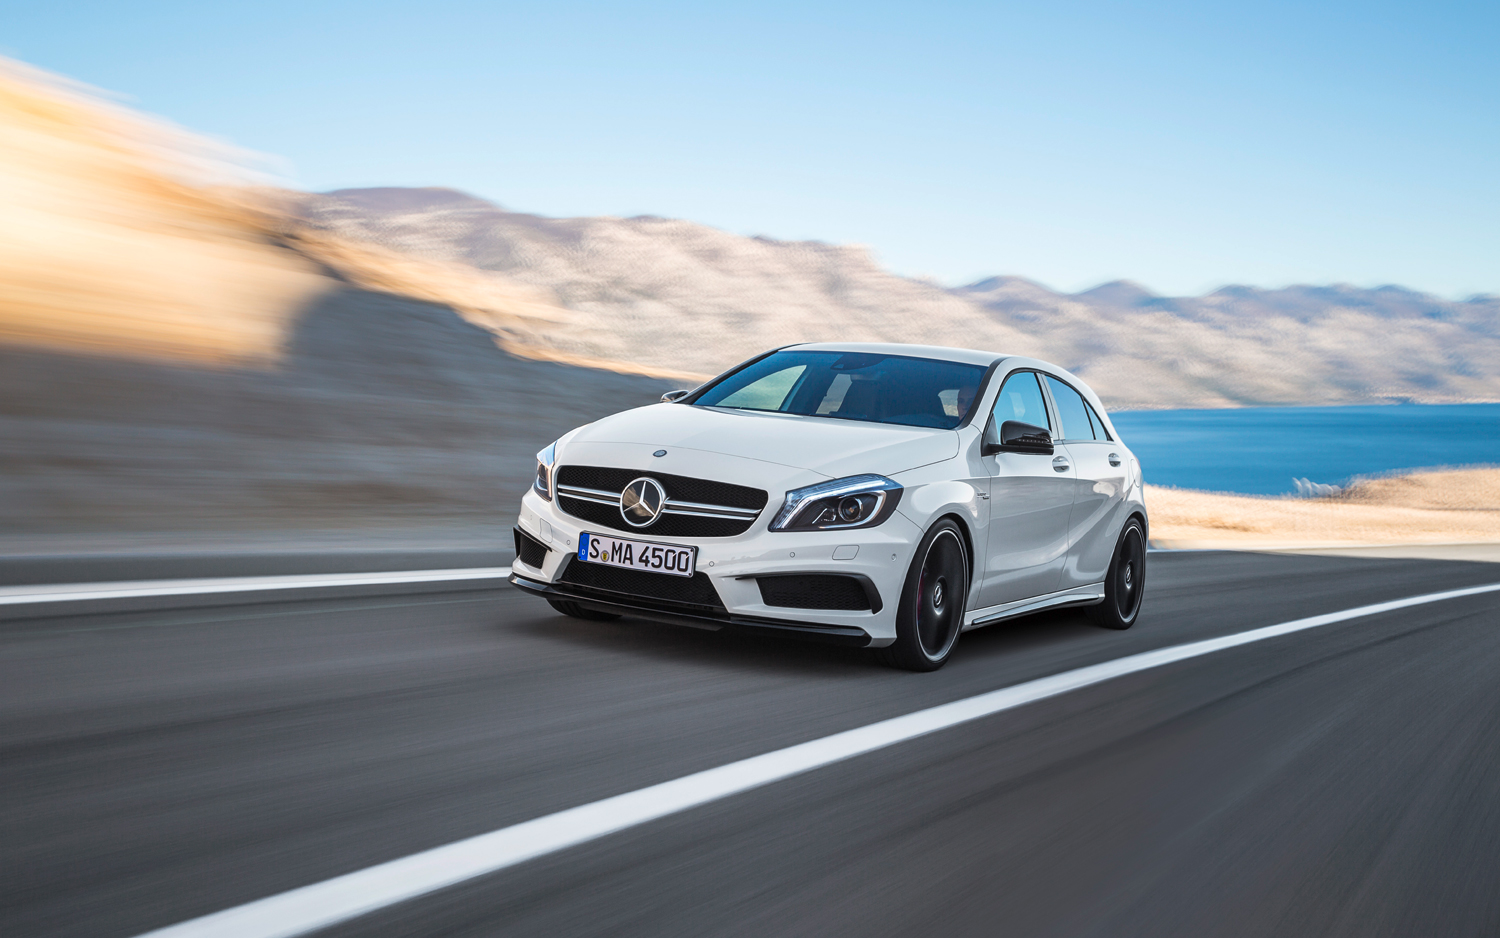 2014 mercedes benz a45 amg owner manual pdf for Mercedes benz amg 6 3